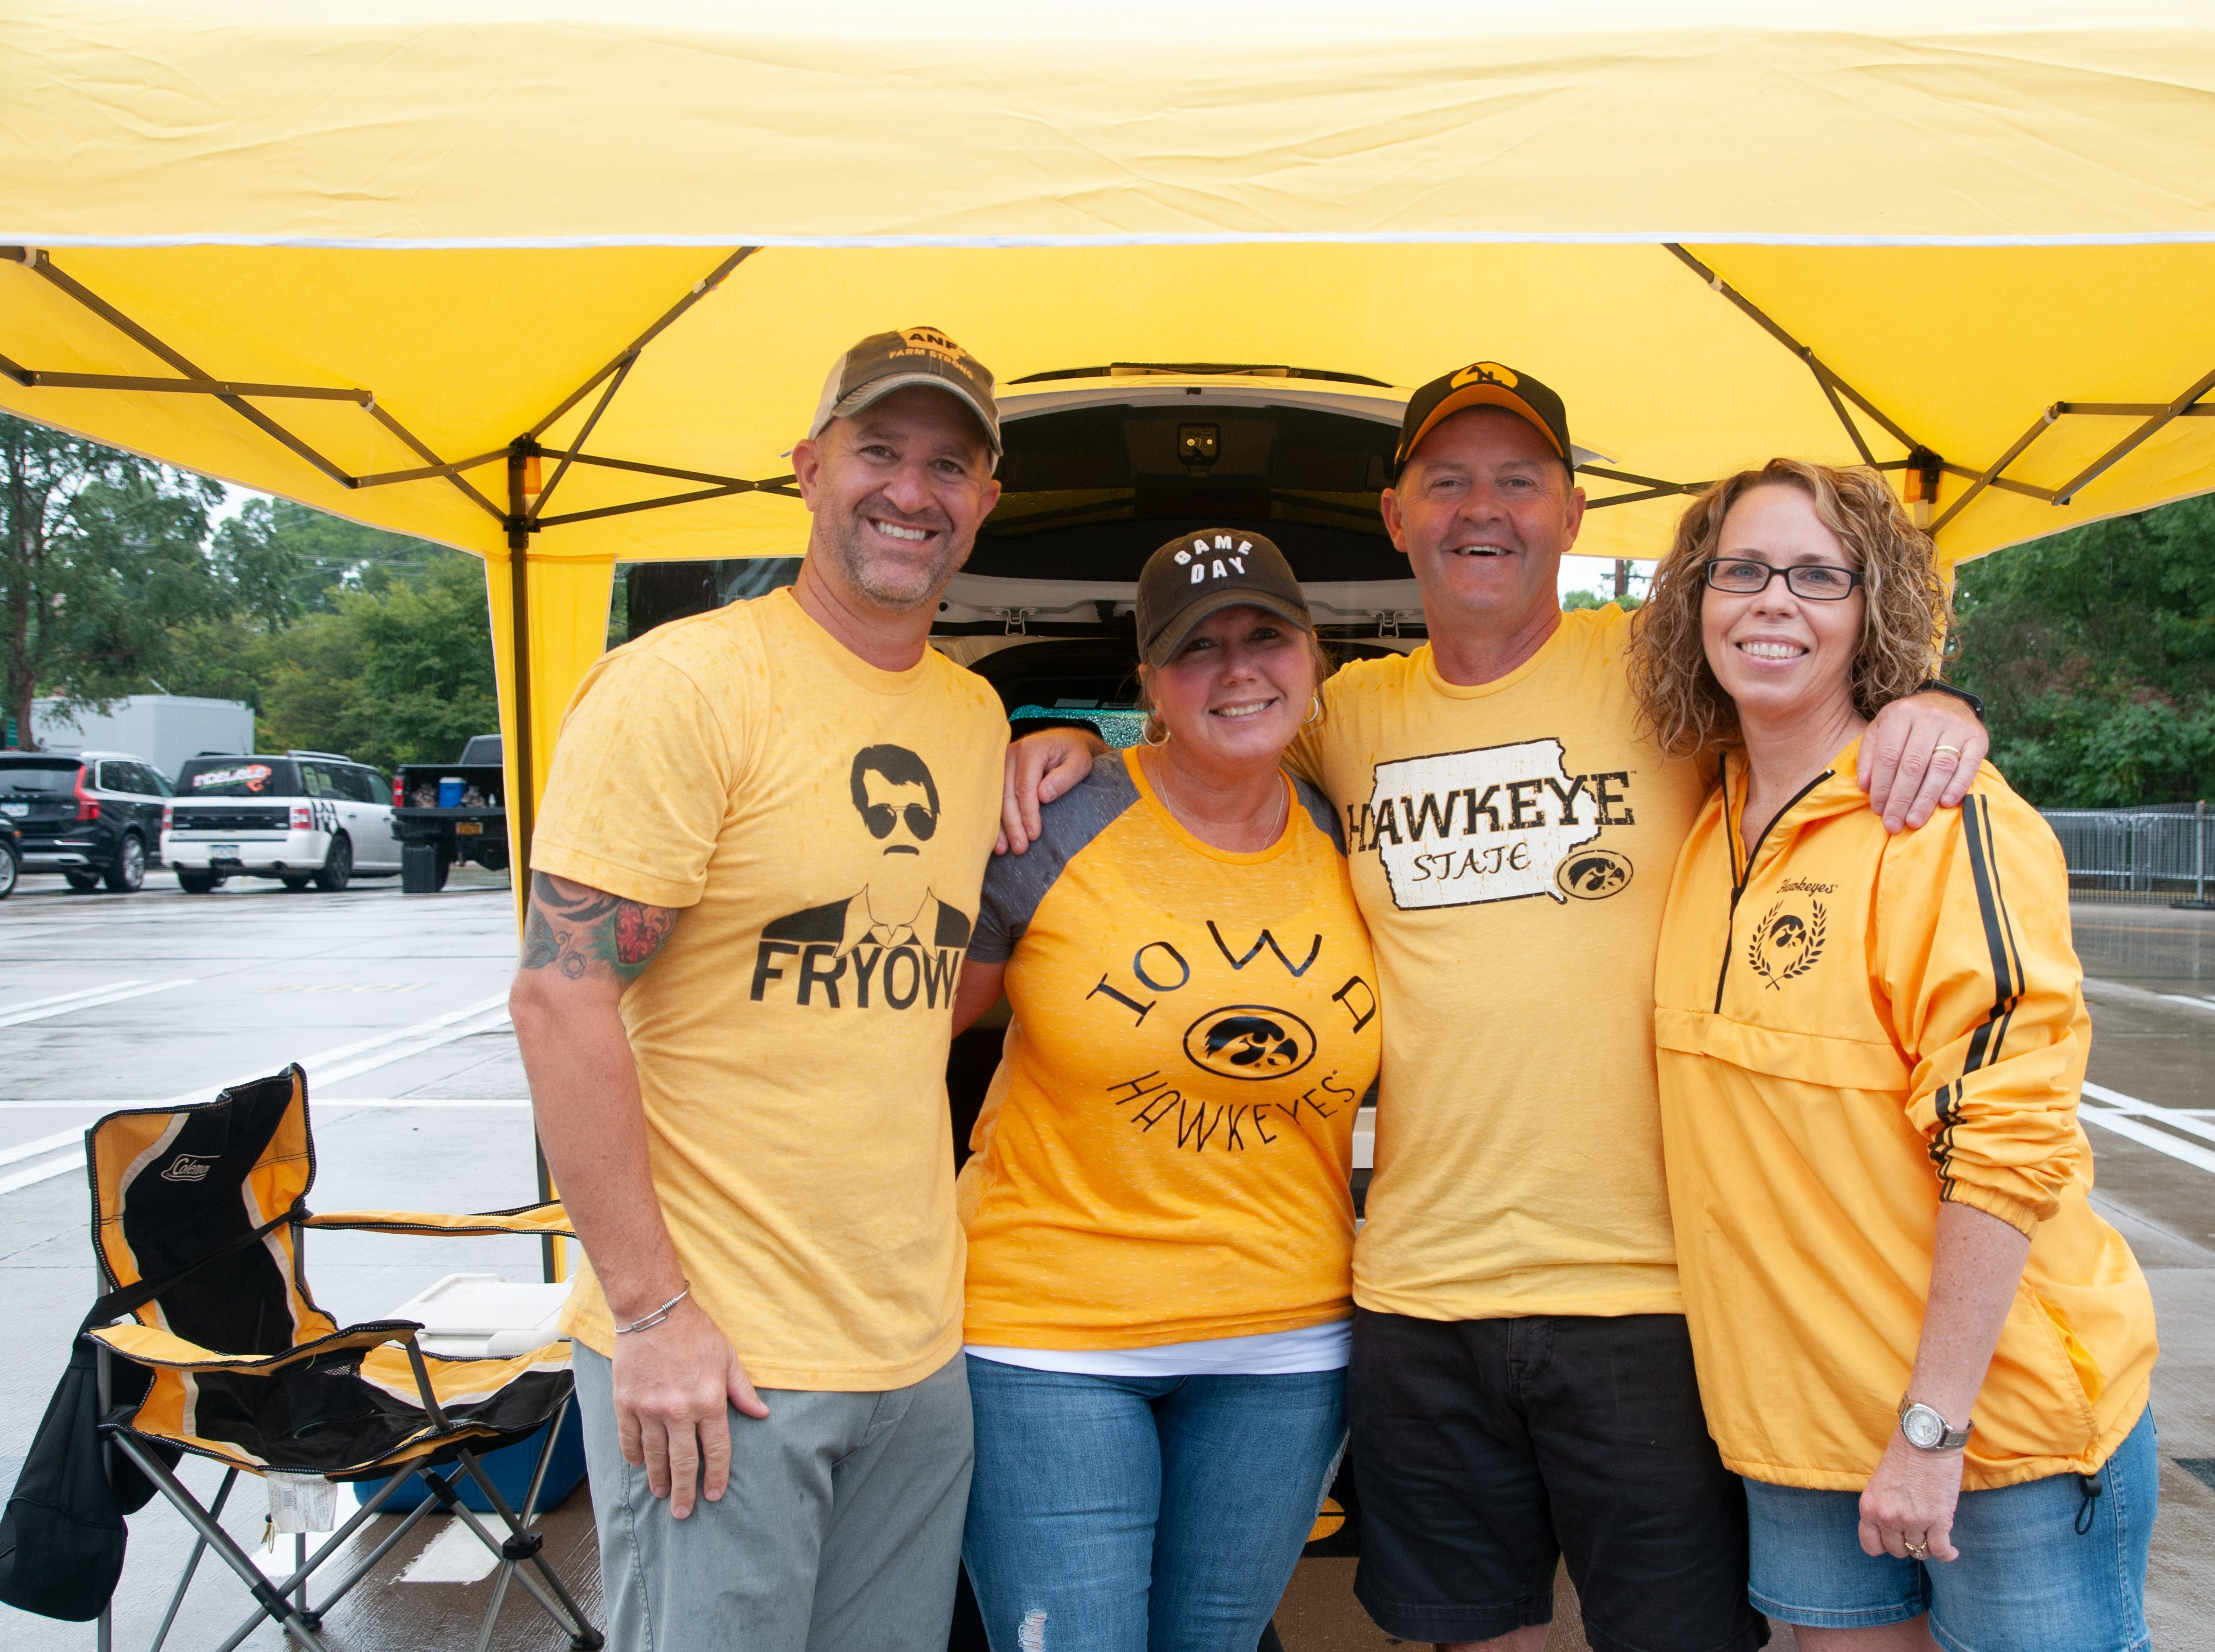 Sam, 51, and Lori Houston, 52, (left), and Mark, 49, and Jennifer Jacobson, 47, of Cedar Rapids, Saturday, Sept. 1, 2018, while tailgating before the Iowa game against Northern Illinois in Iowa City.